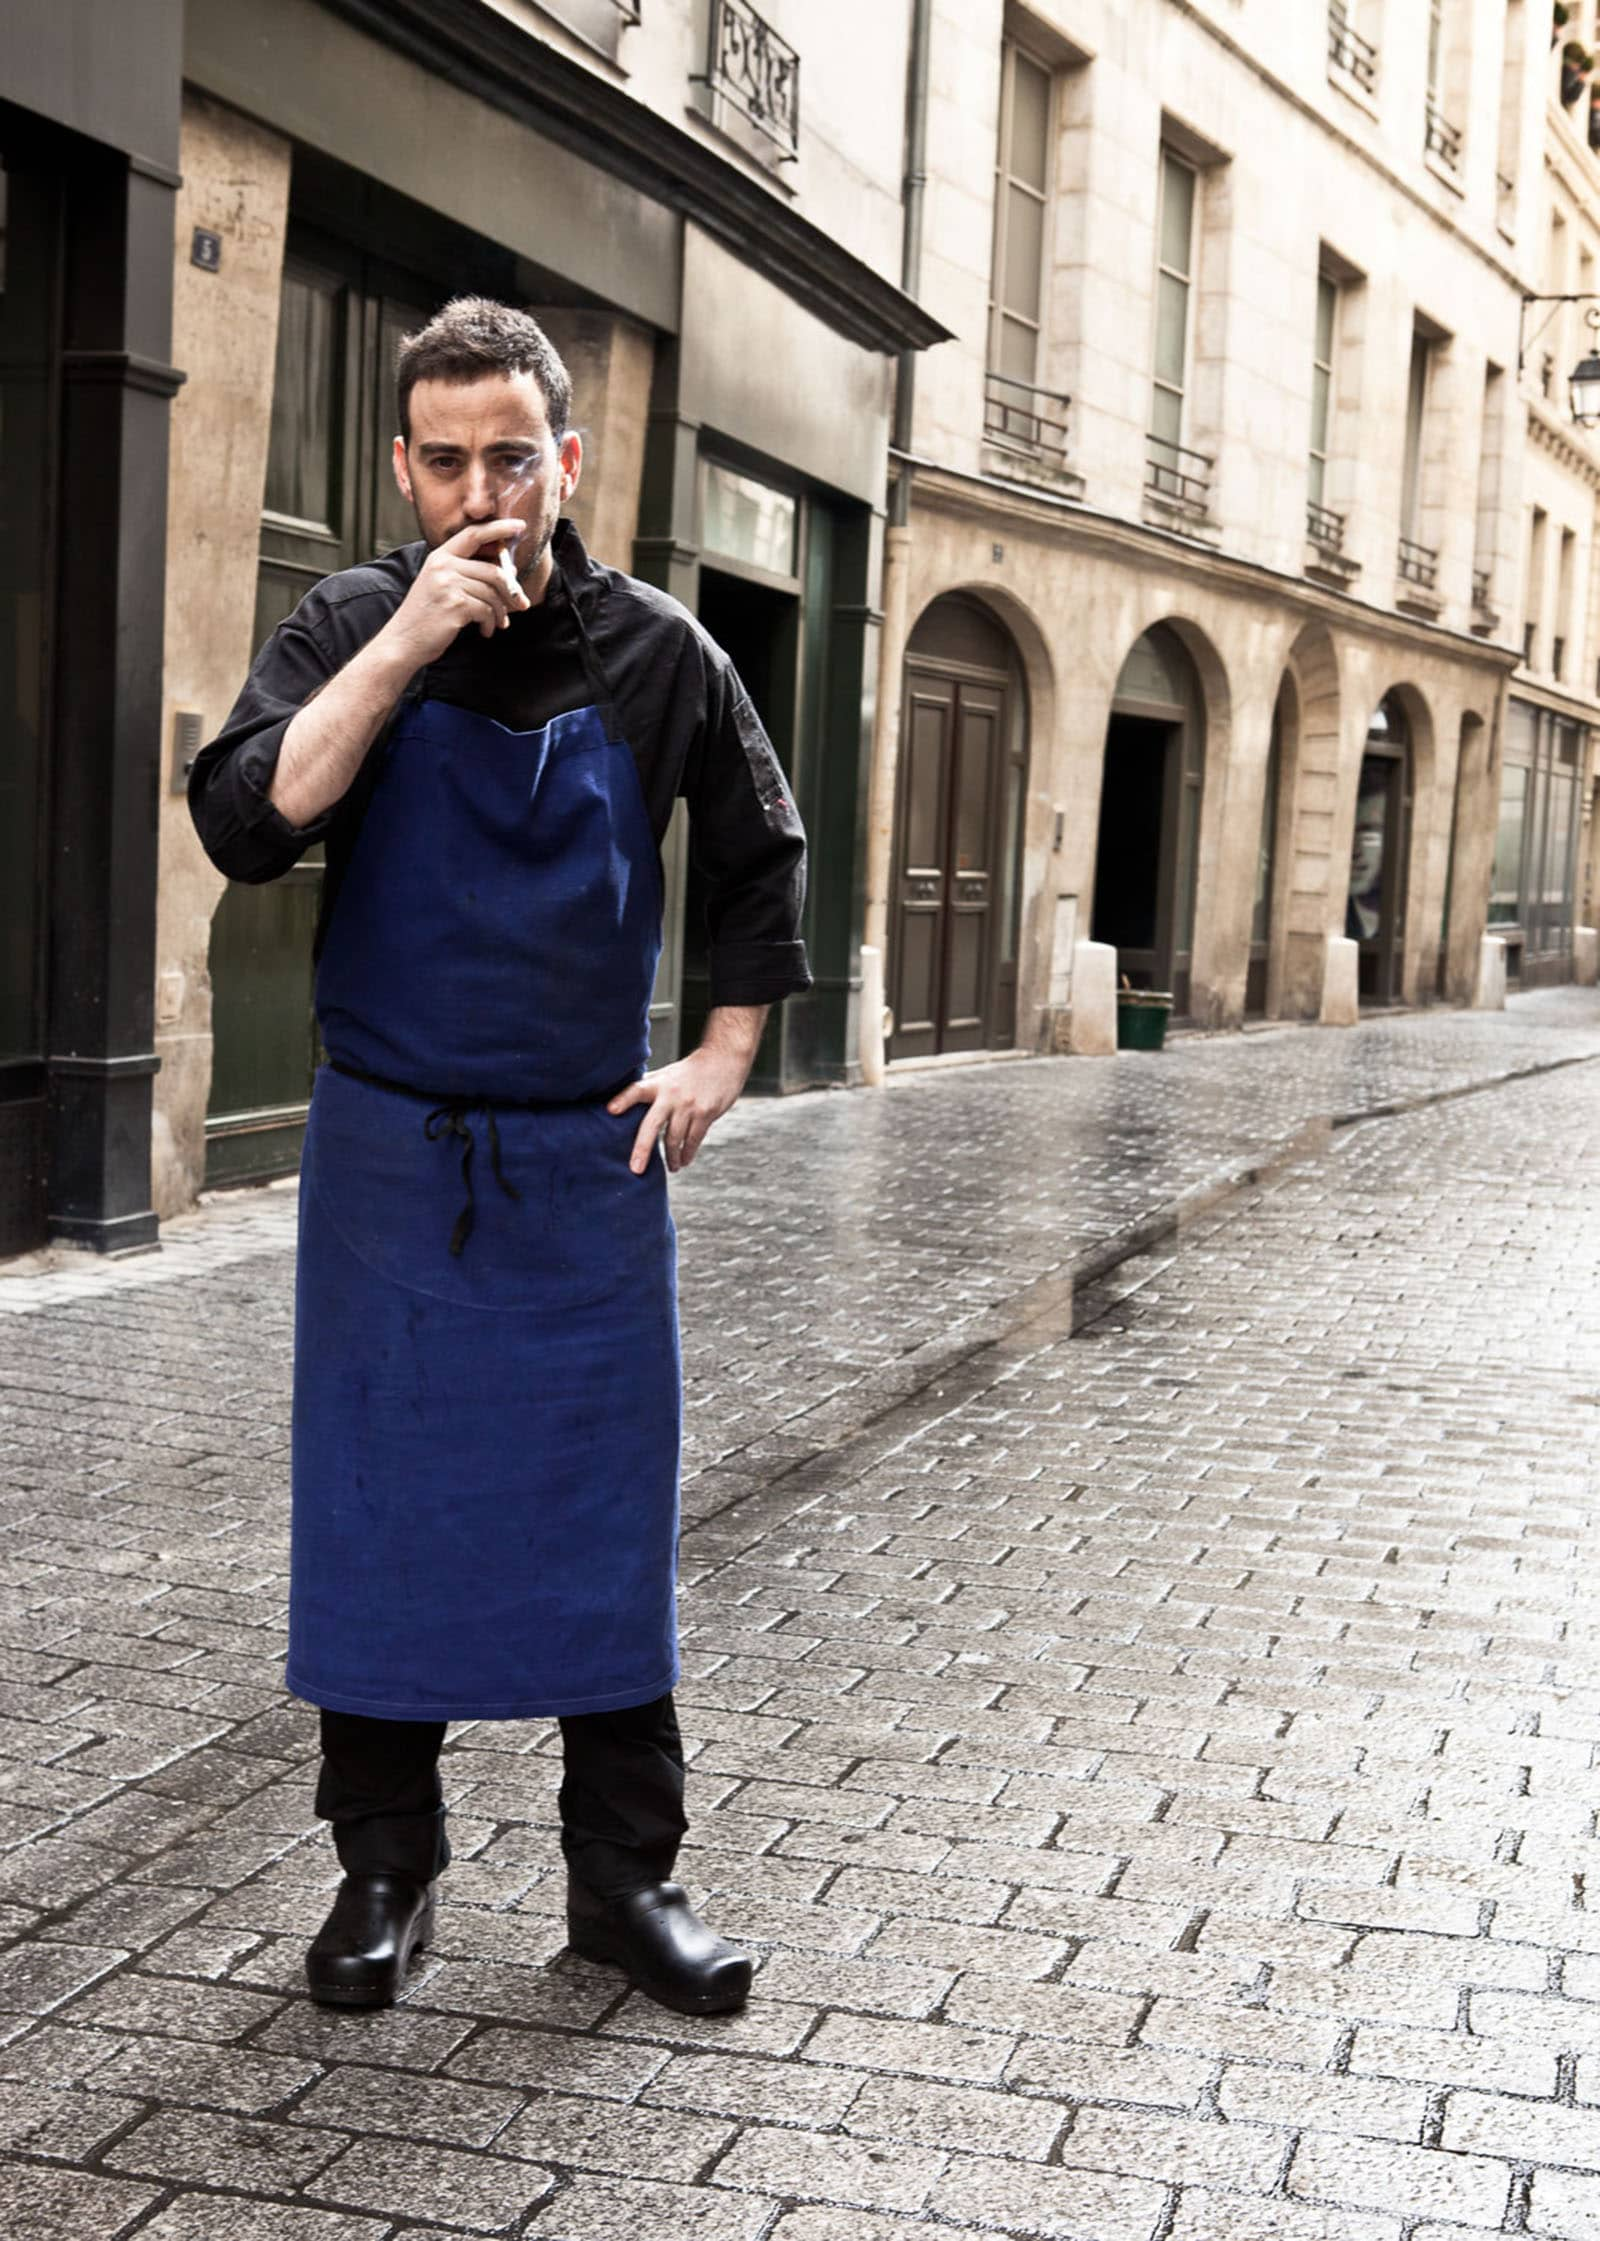 On the streets of Paris with Chef Daniel Rose in his kitchen apron having a cigarette.